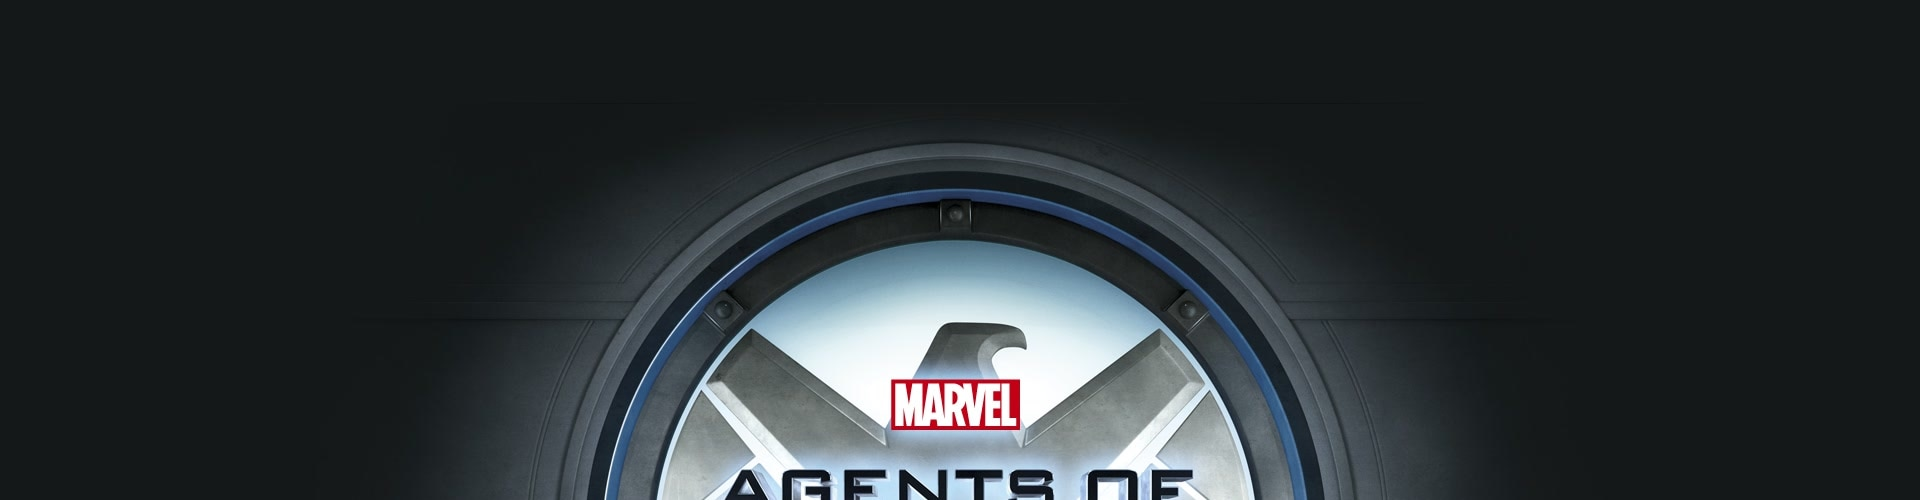 Watch Marvel's Agents of S.H.I.E.L.D. Online